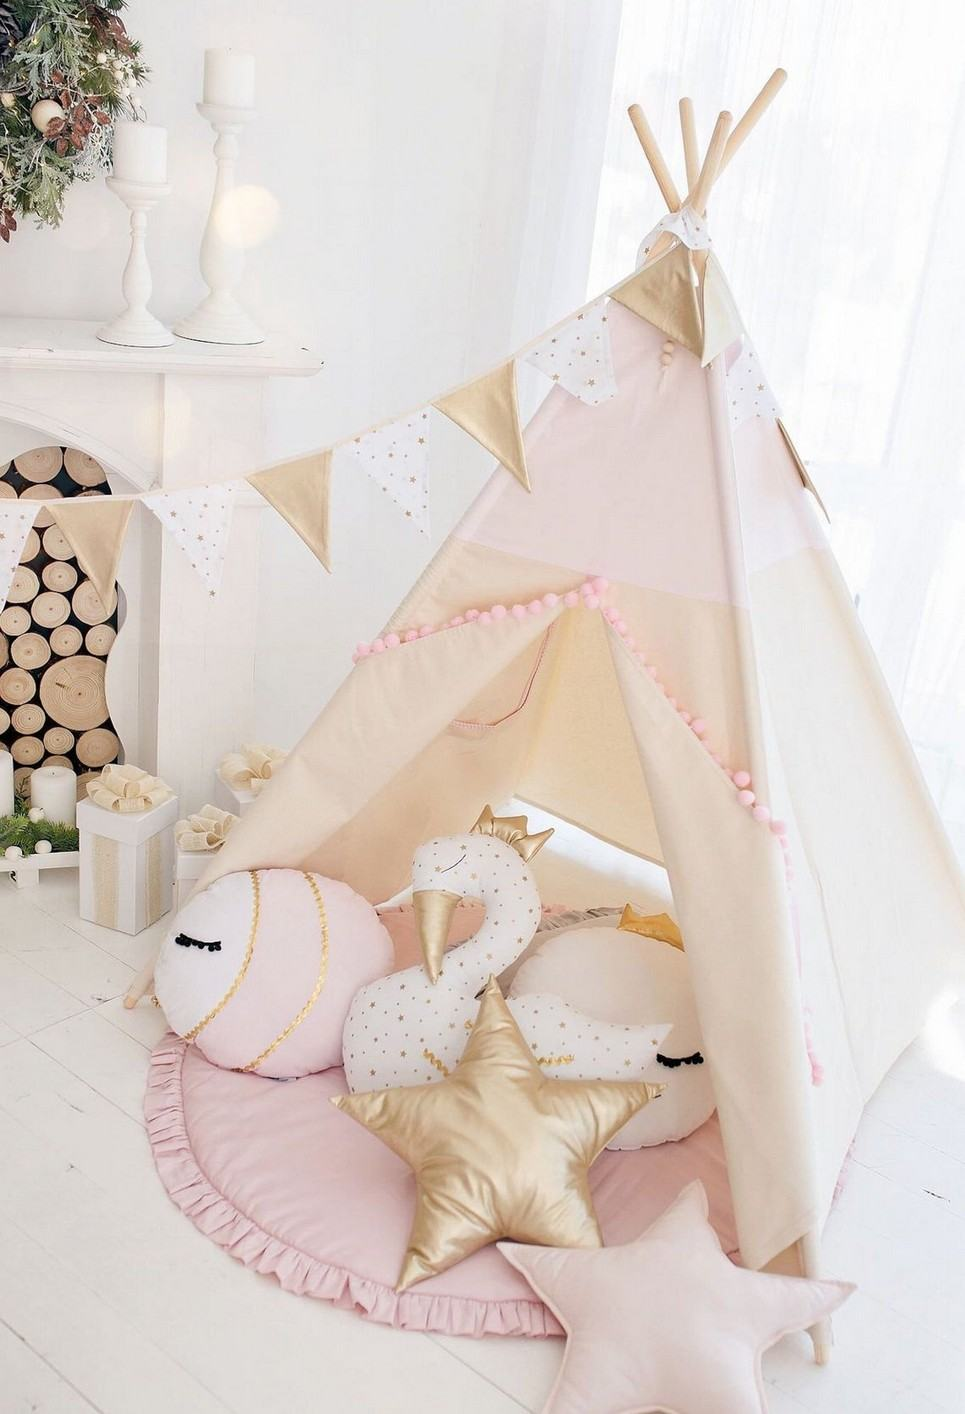 Pink with Pom Poms Children's Play Teepee